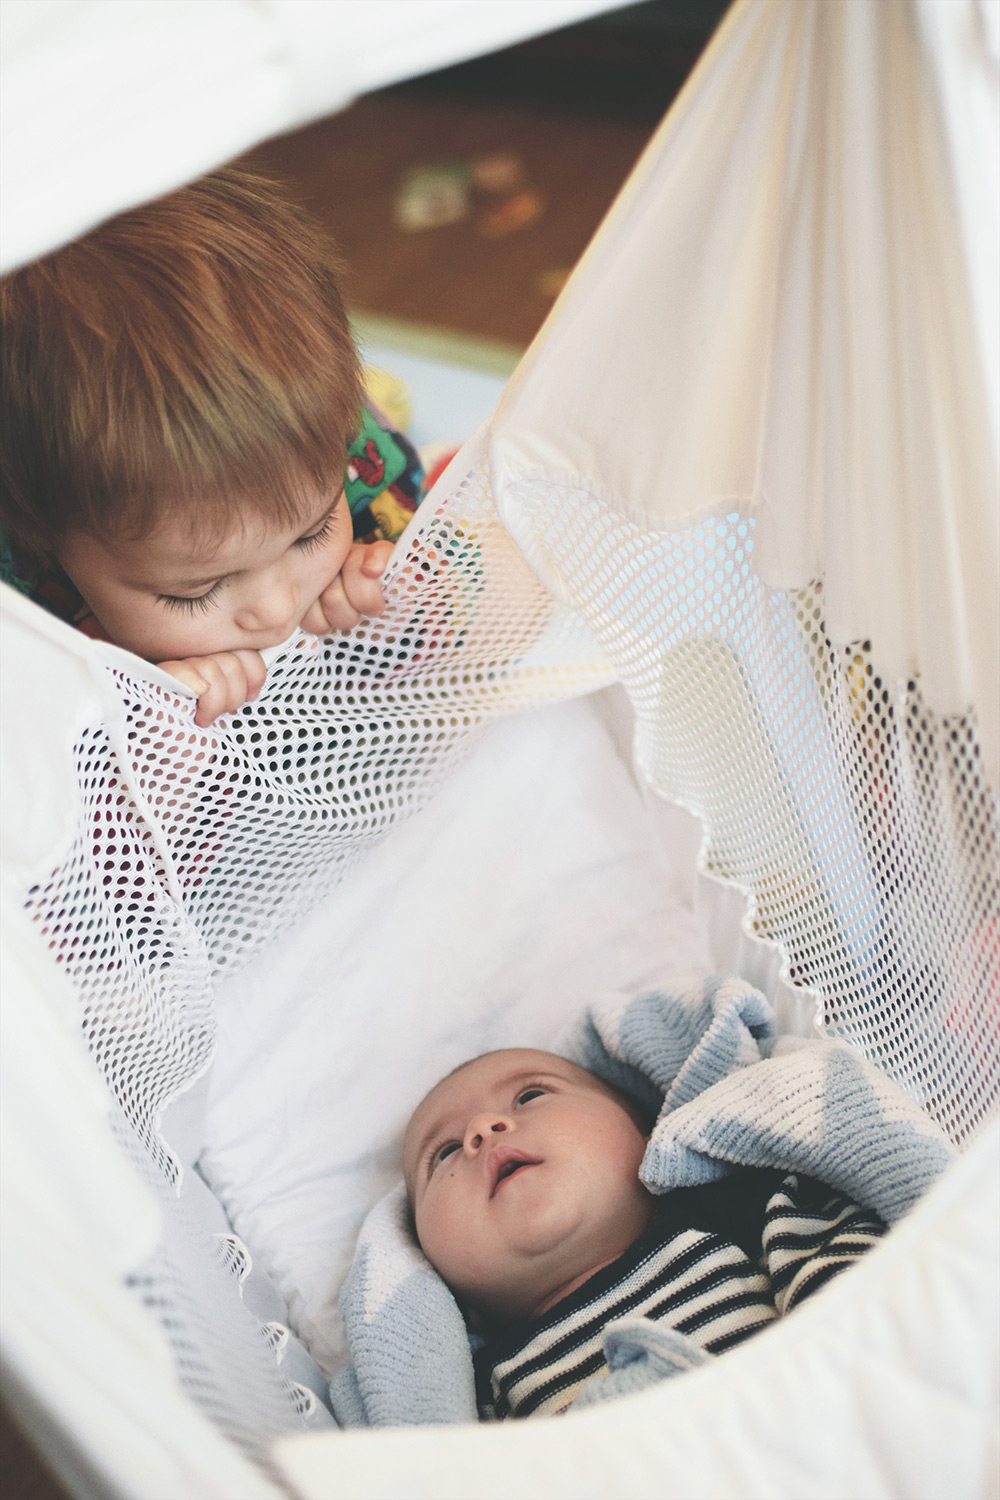 Baby Jesse Blue at 4 months old - Newborn baby boy in his Poco Baby Hammock looking up at older toddler brother